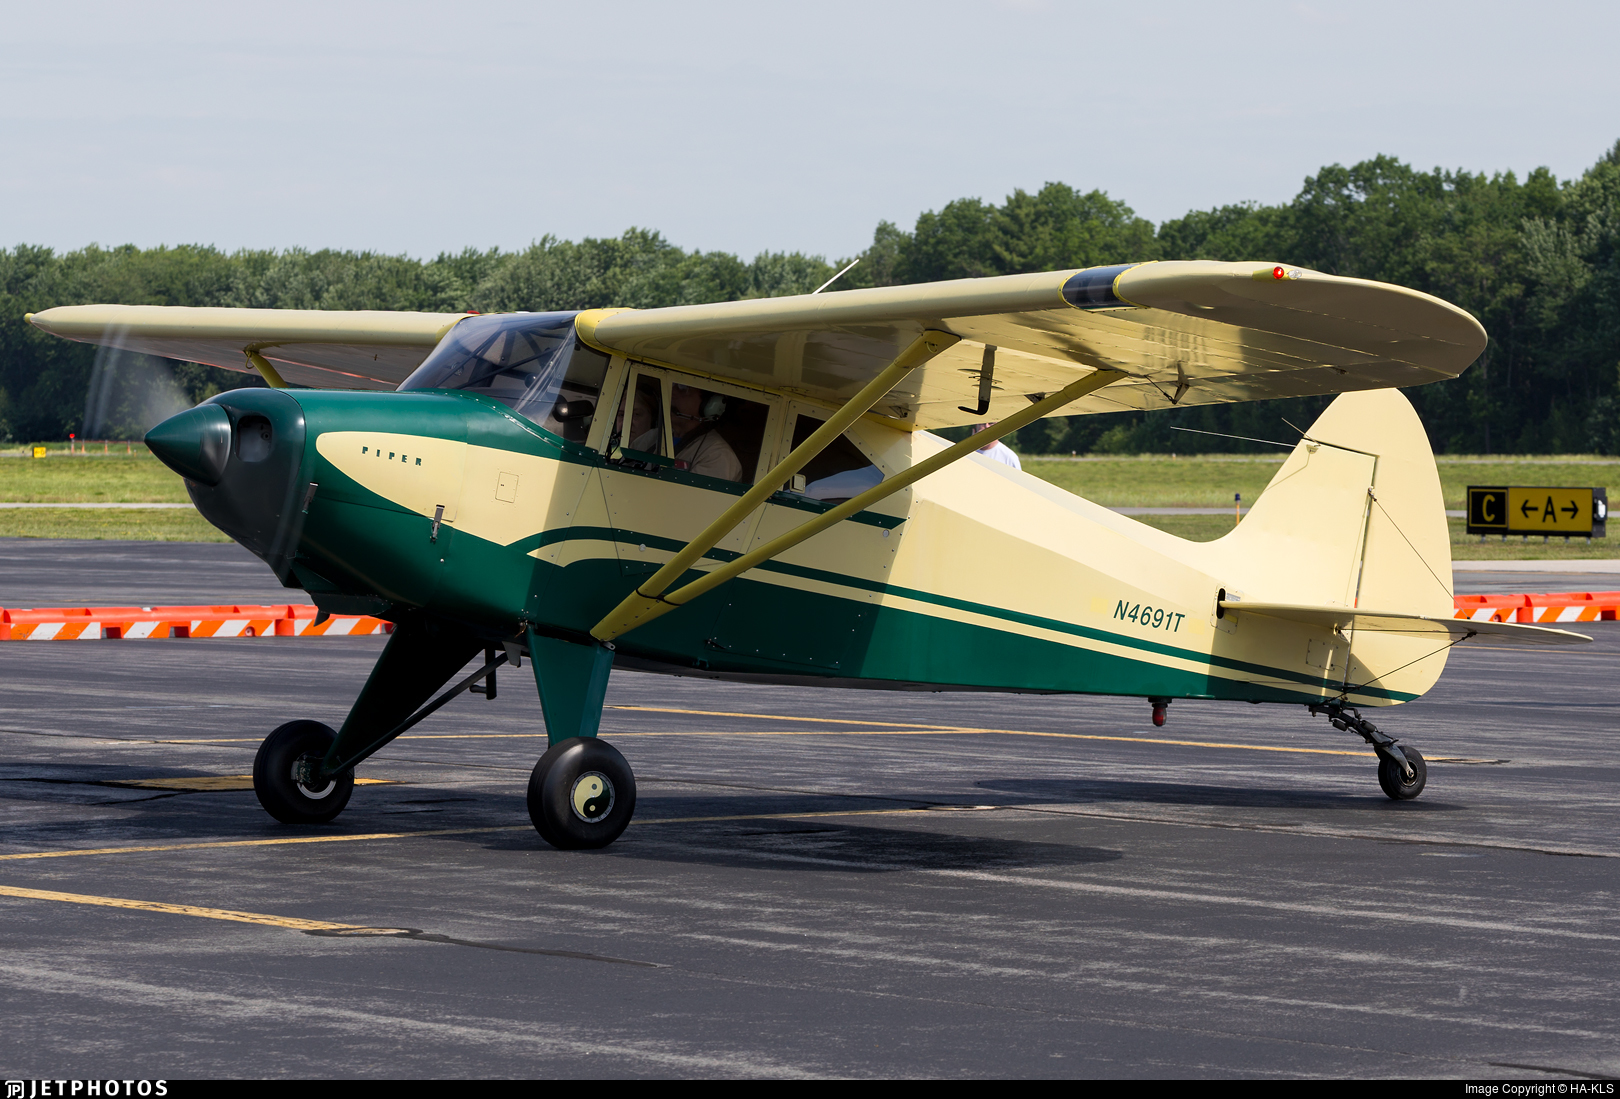 N4691T - Piper PA-22-150 Pacer - Private